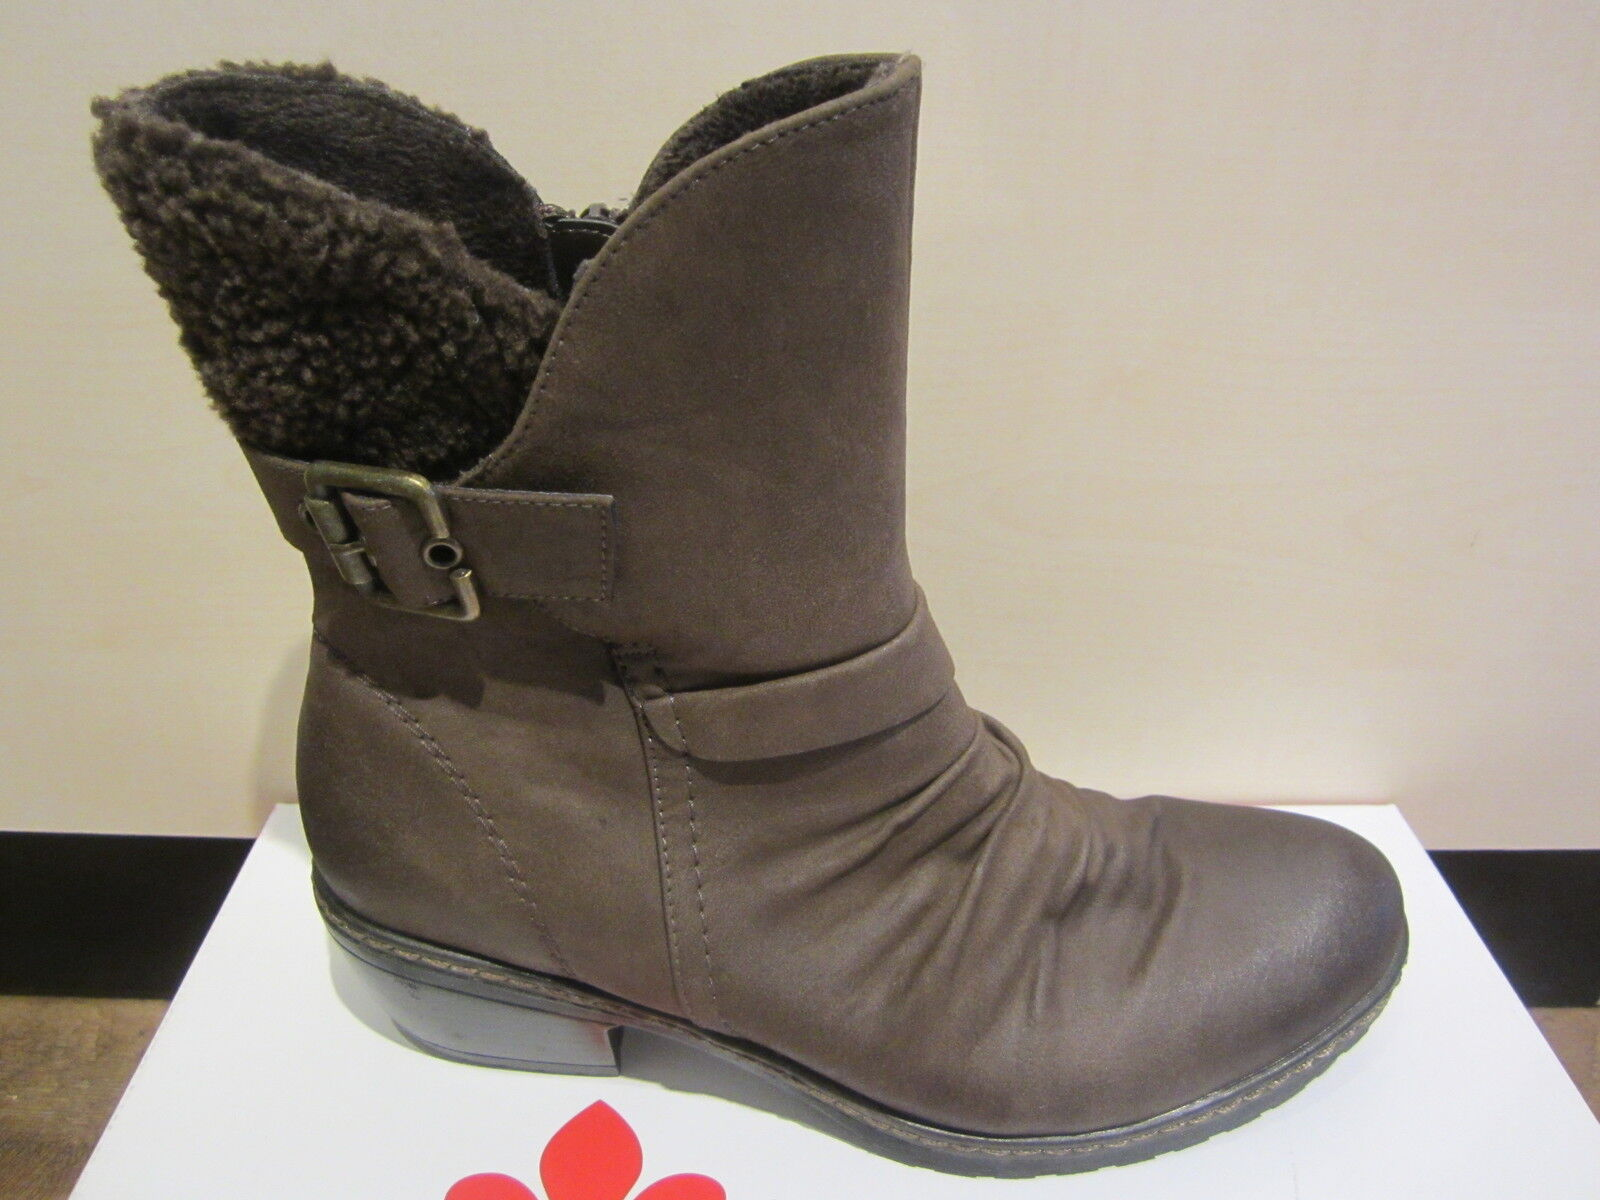 Rieker Boots, Brown, Not Leather, Warm Lining 90764, NEW